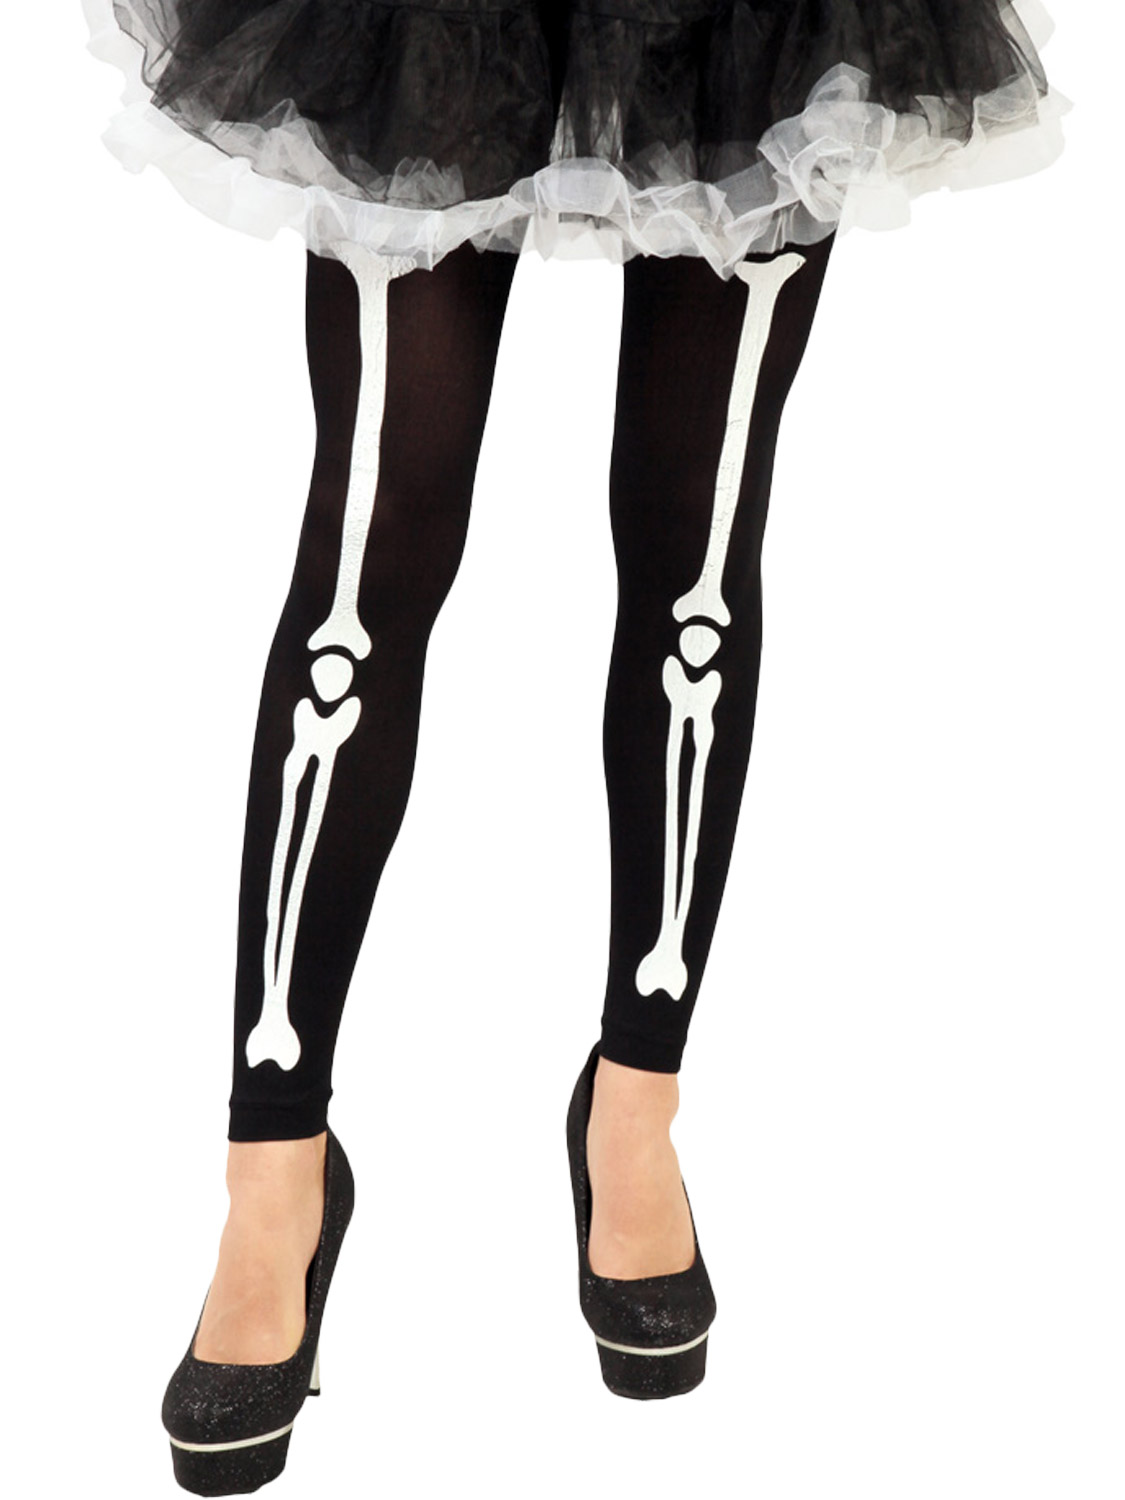 43970973f2f795 Details about Ladies Skeleton Print Footless Tights Adults Halloween Fancy  Dress Accessory STD